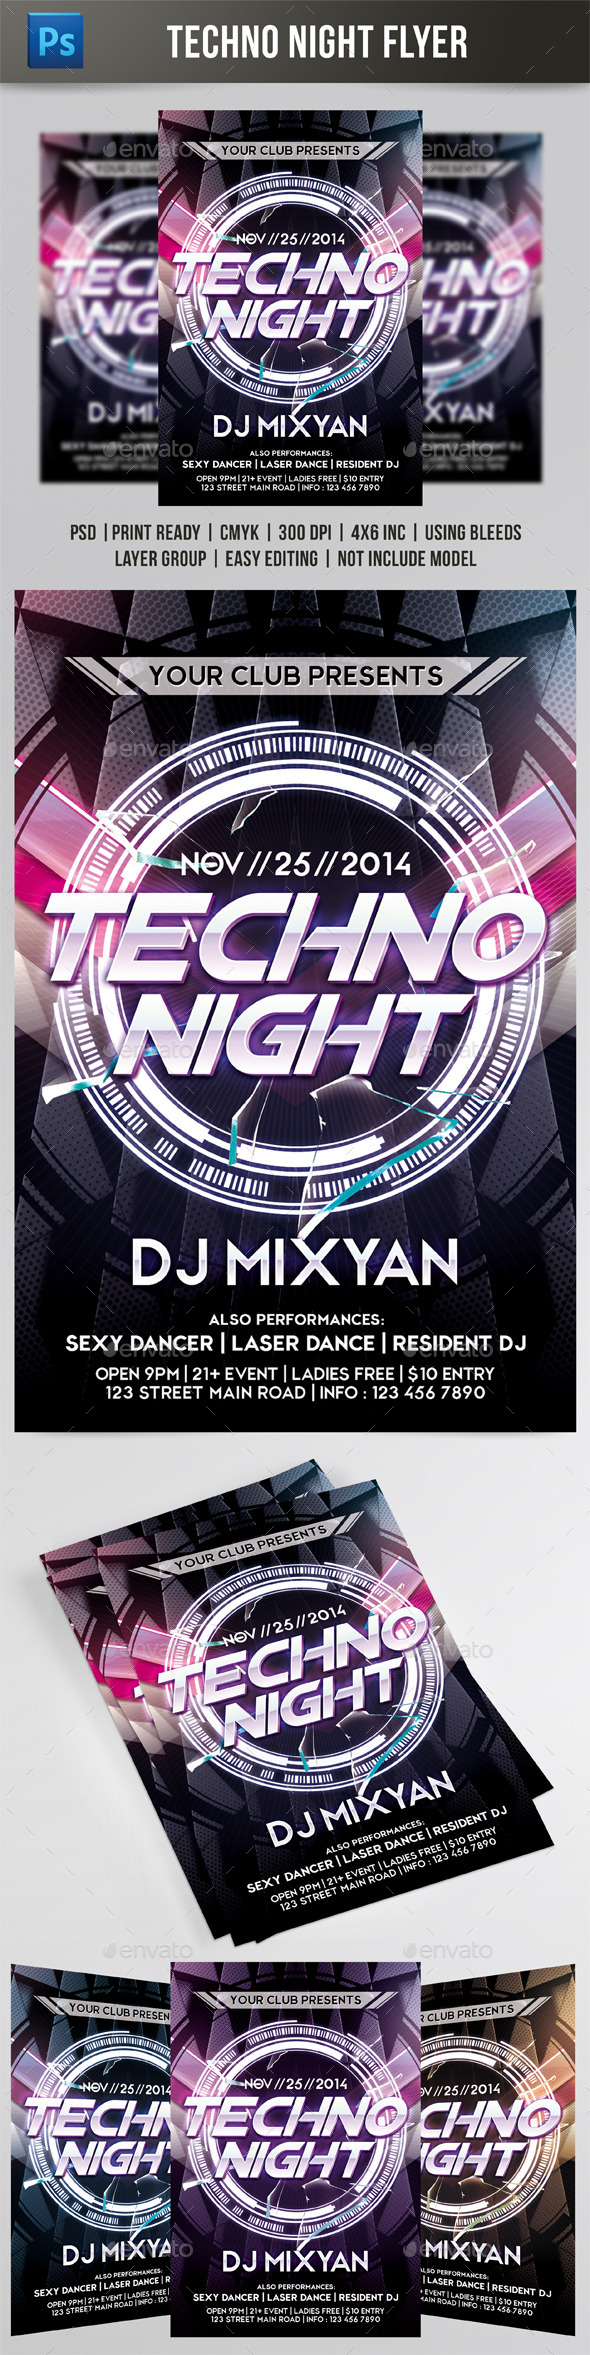 Techno Night #2 Flyer - Events Flyers